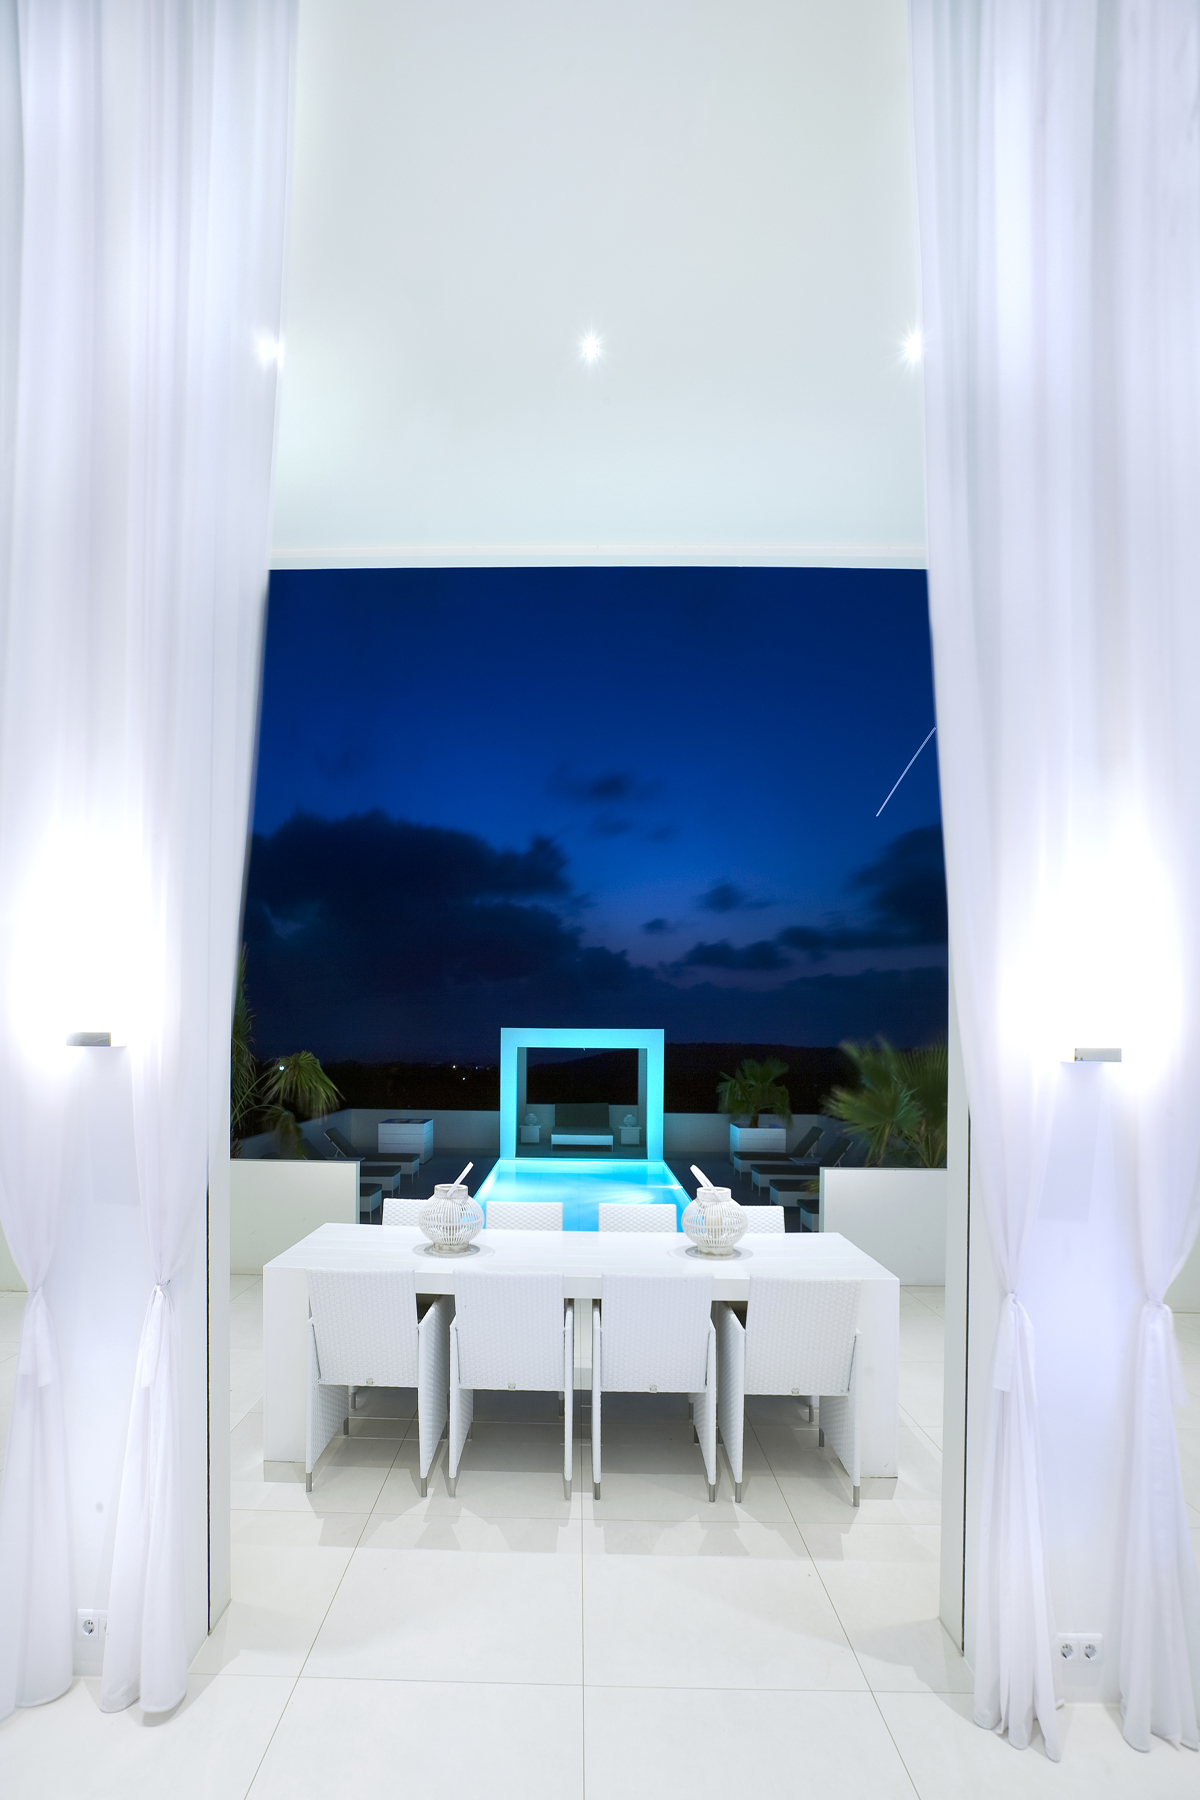 Additional photo for property listing at Coral Estate 806 Other Cities In Curacao, Cities In Curacao Curacao